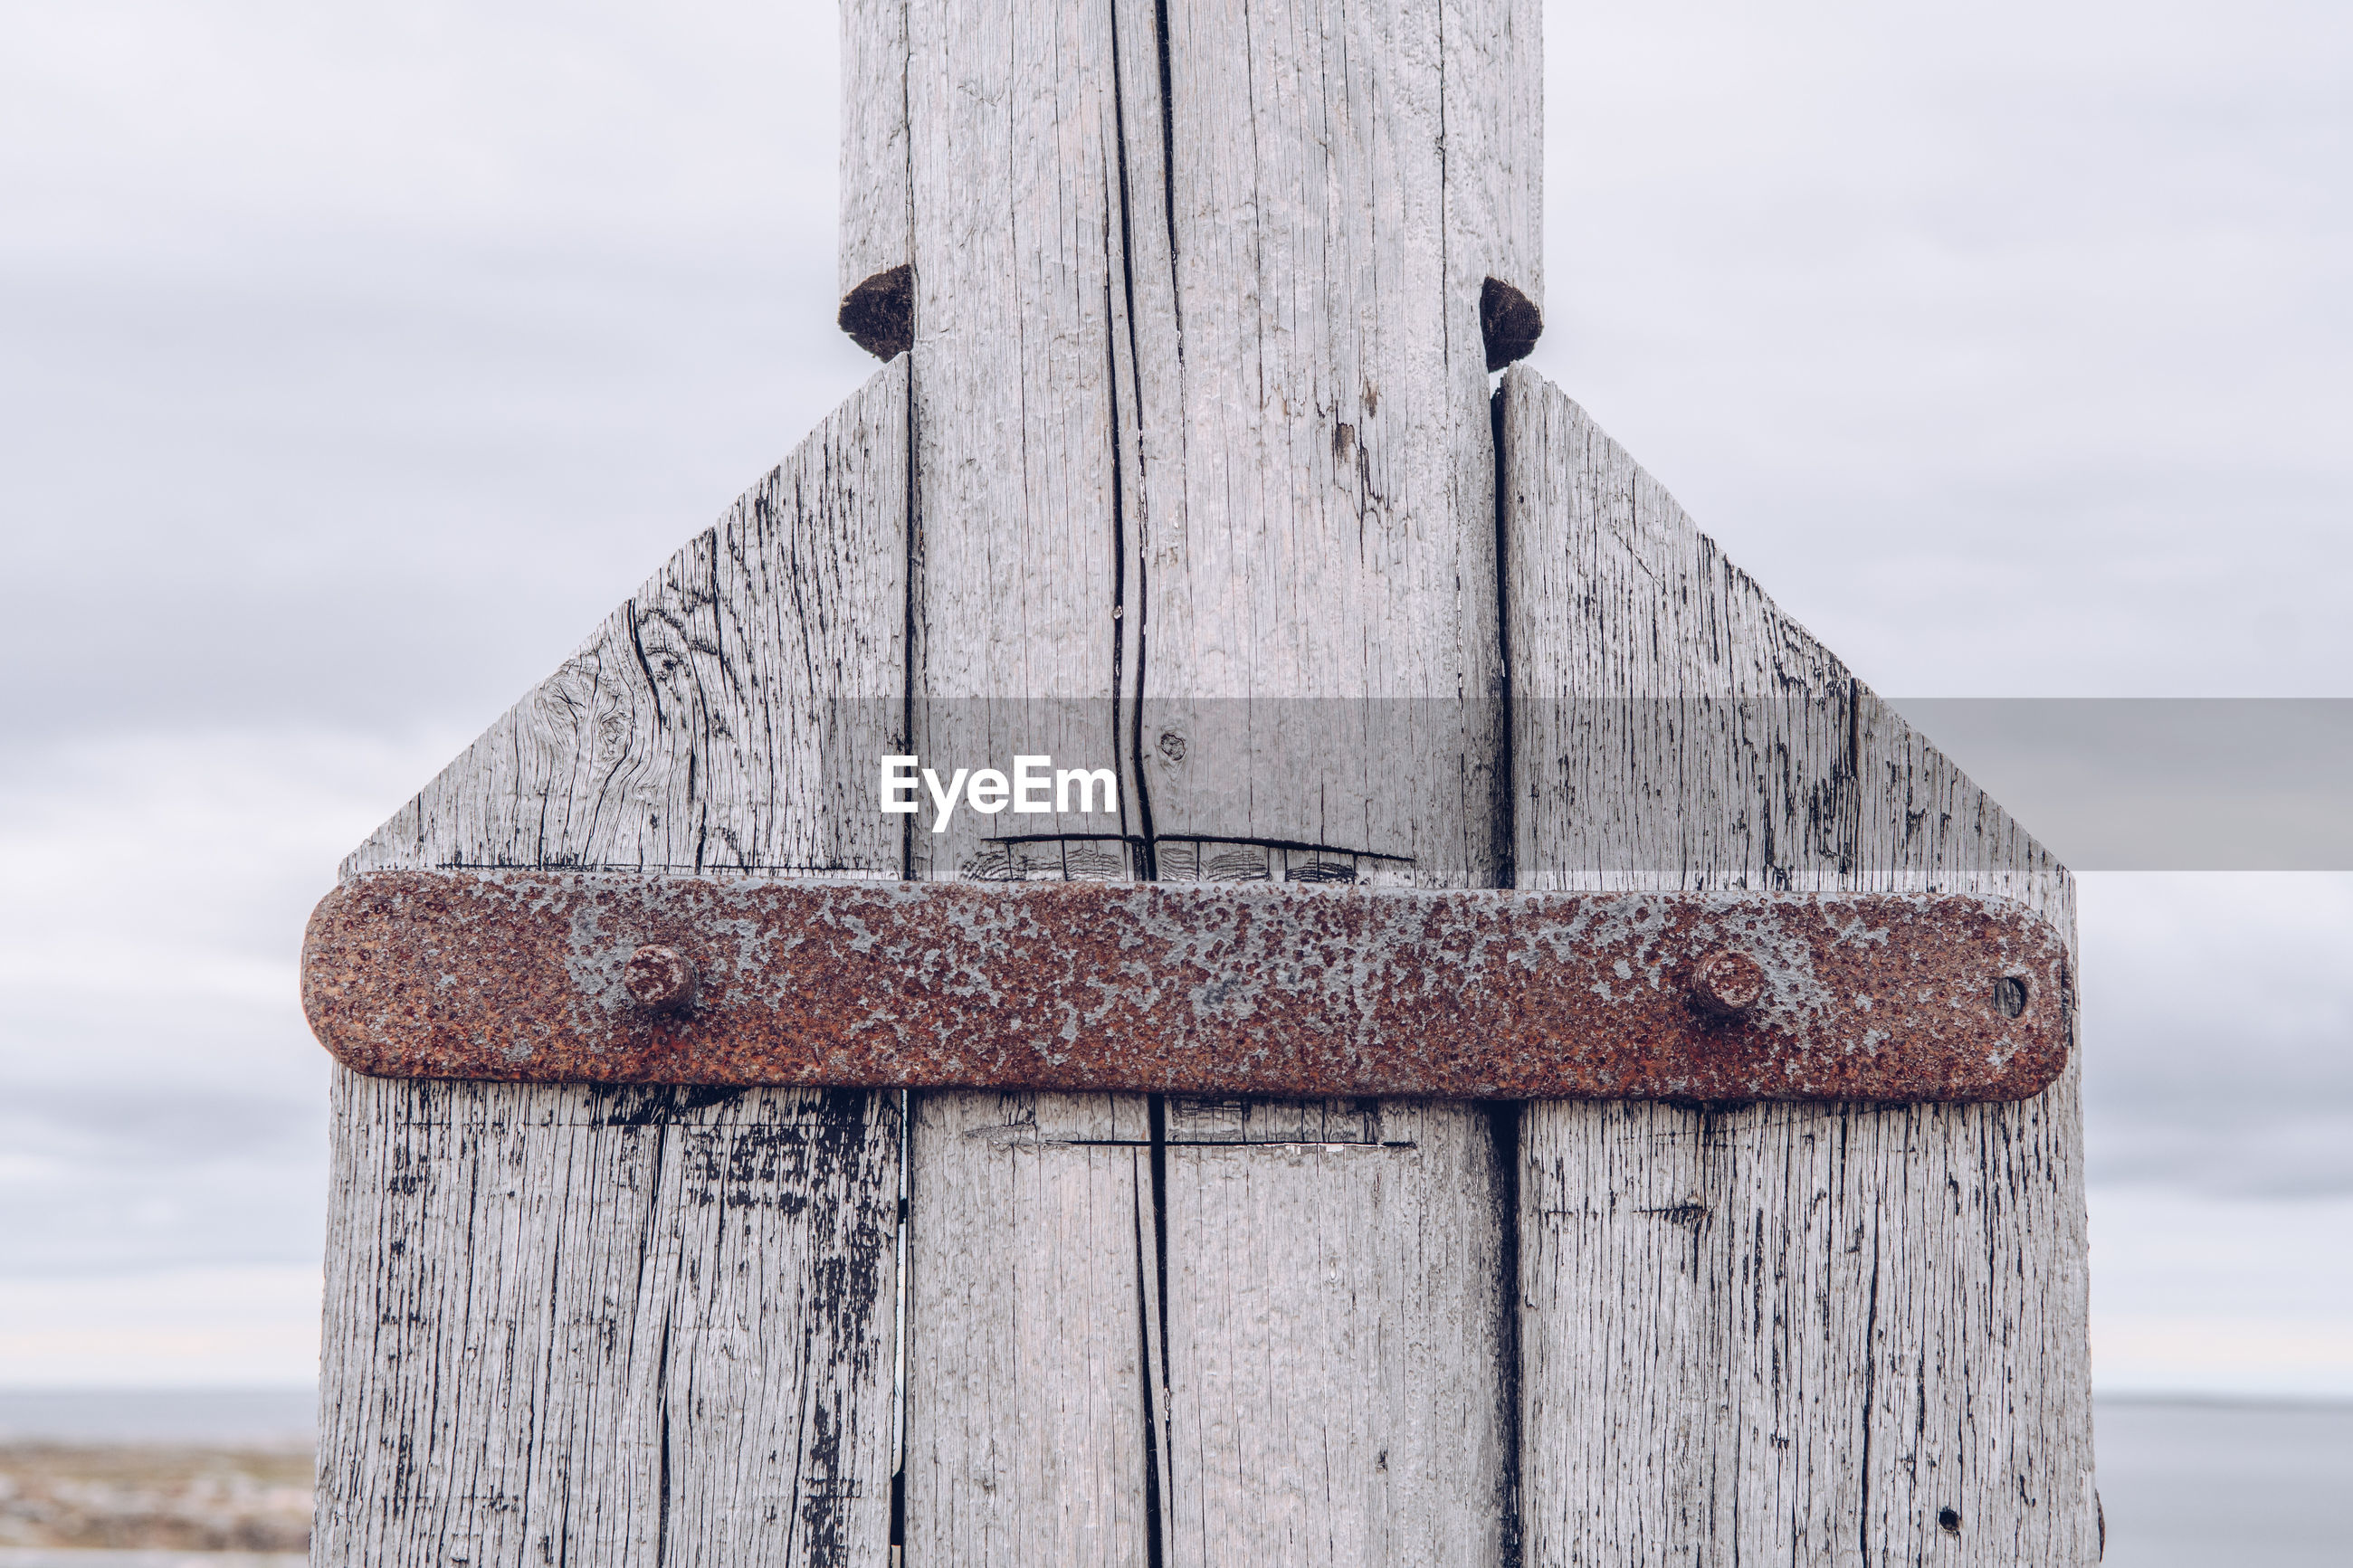 Close-up of wooden built structure against sky